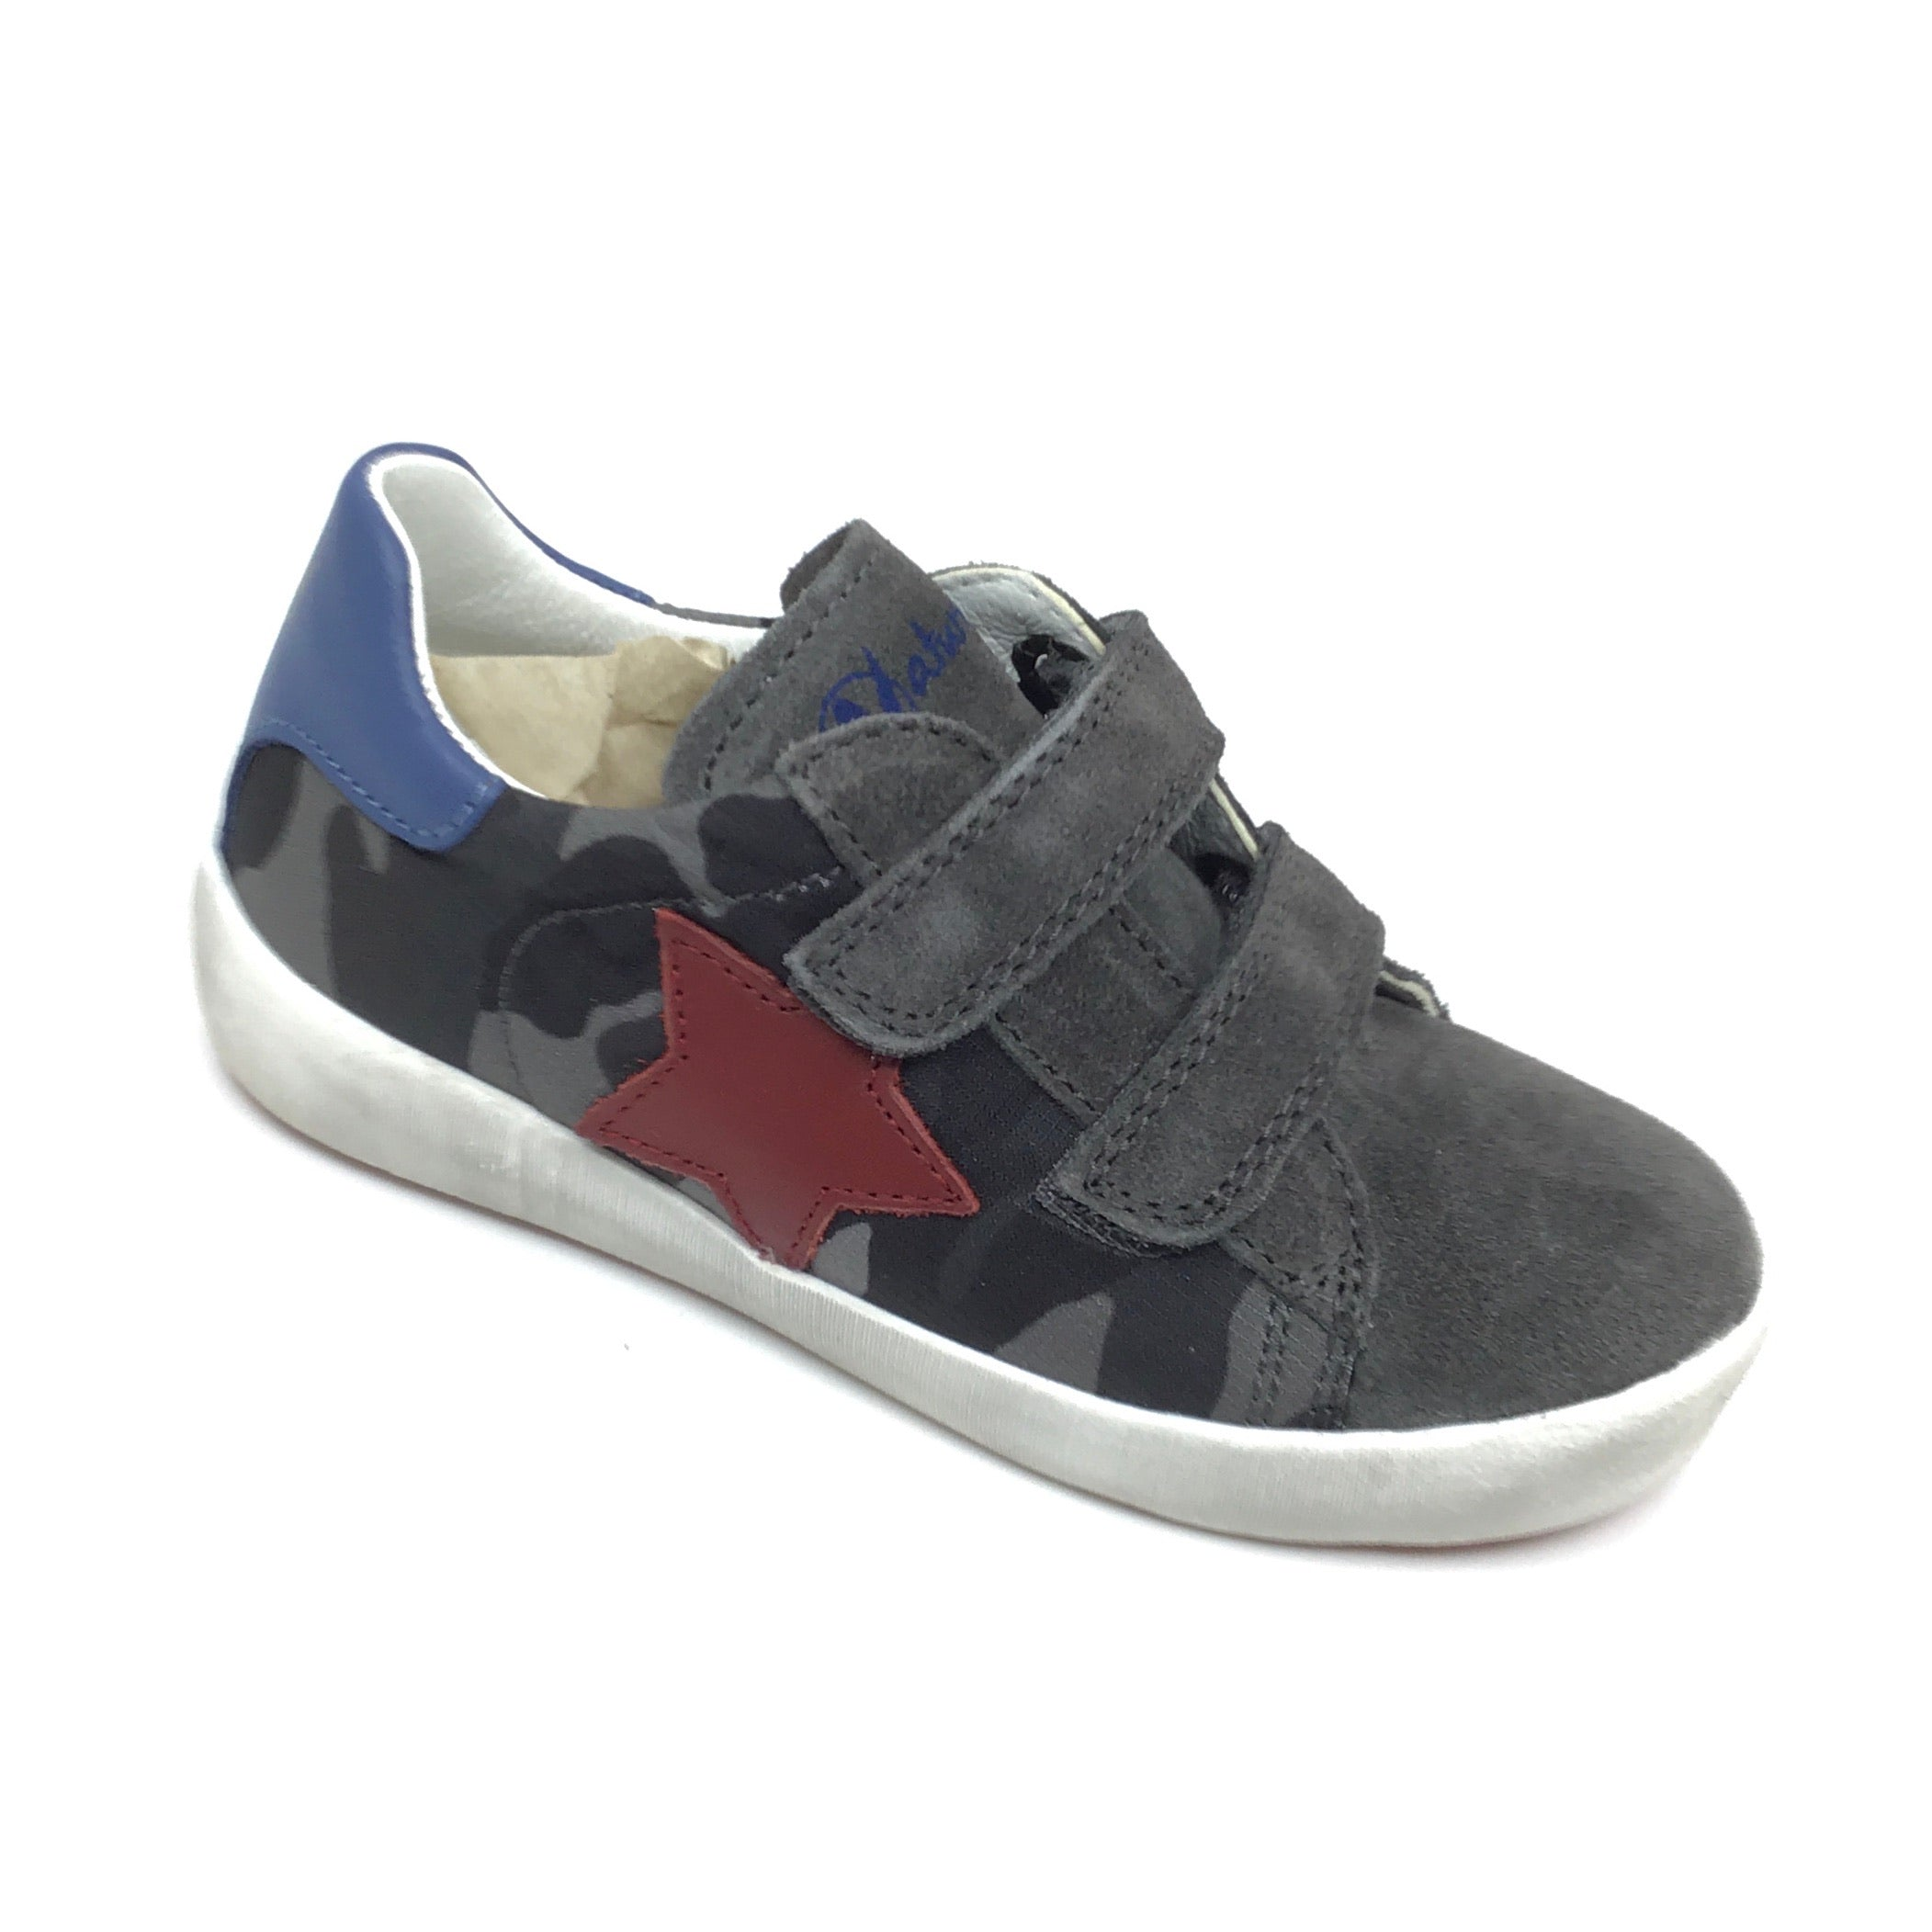 Naturino Gray Camouflage Sneaker with Red Star